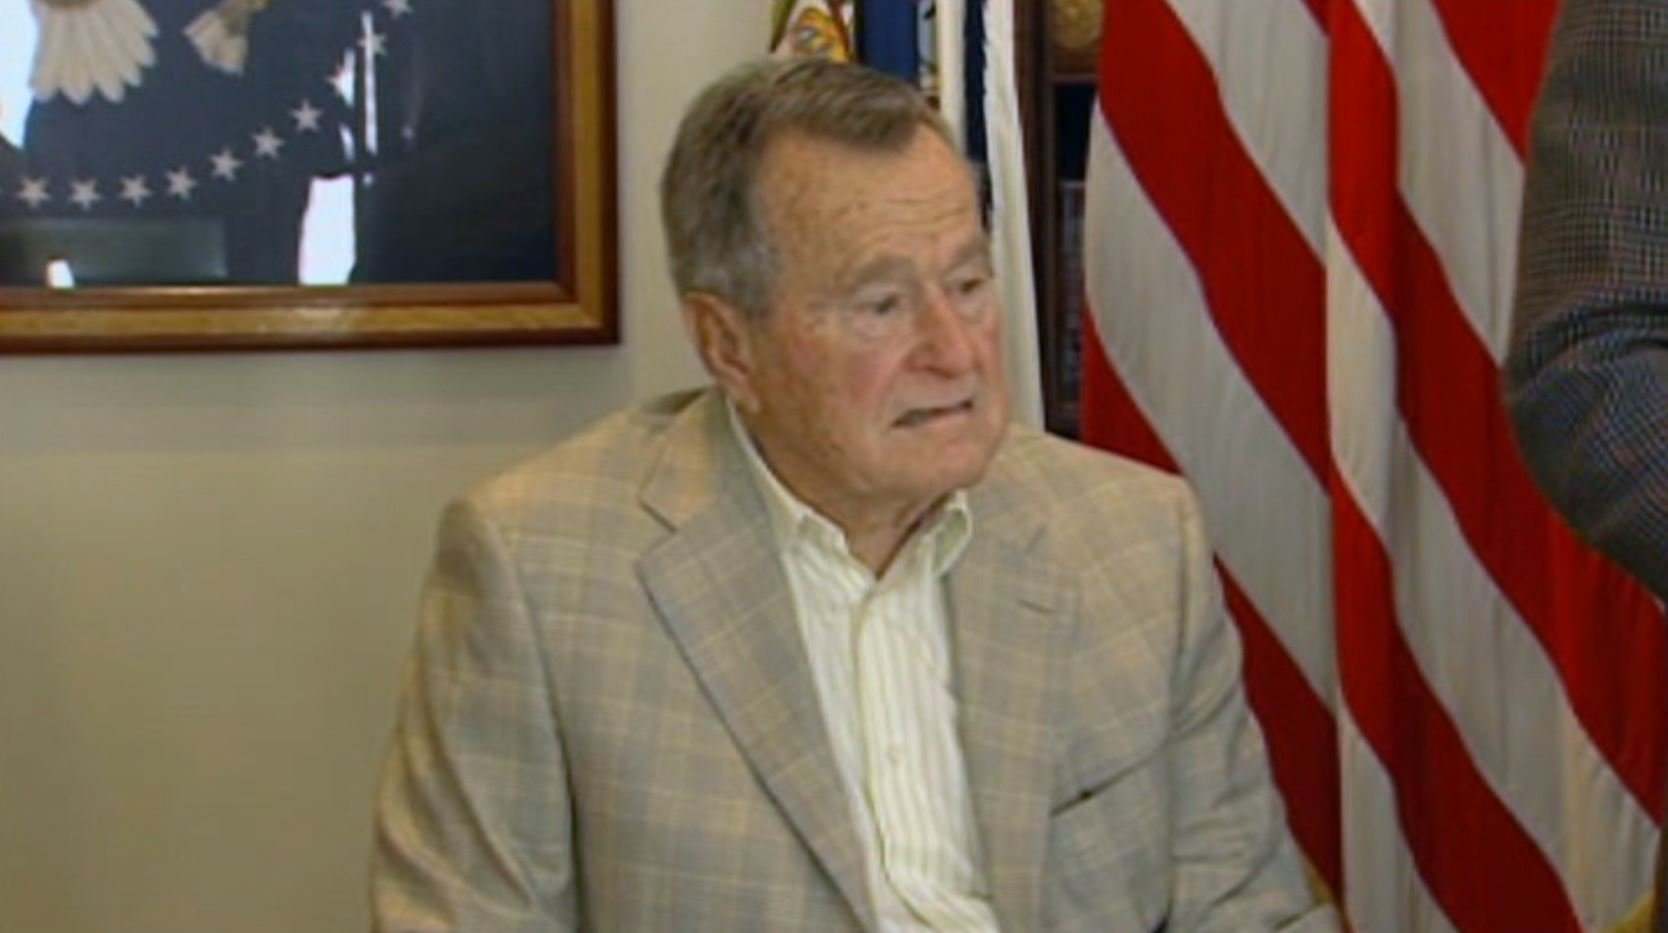 Former President George H. W. Bush was hospitalized Wednesday, but his condition has steadily improved. (Source: CNN)